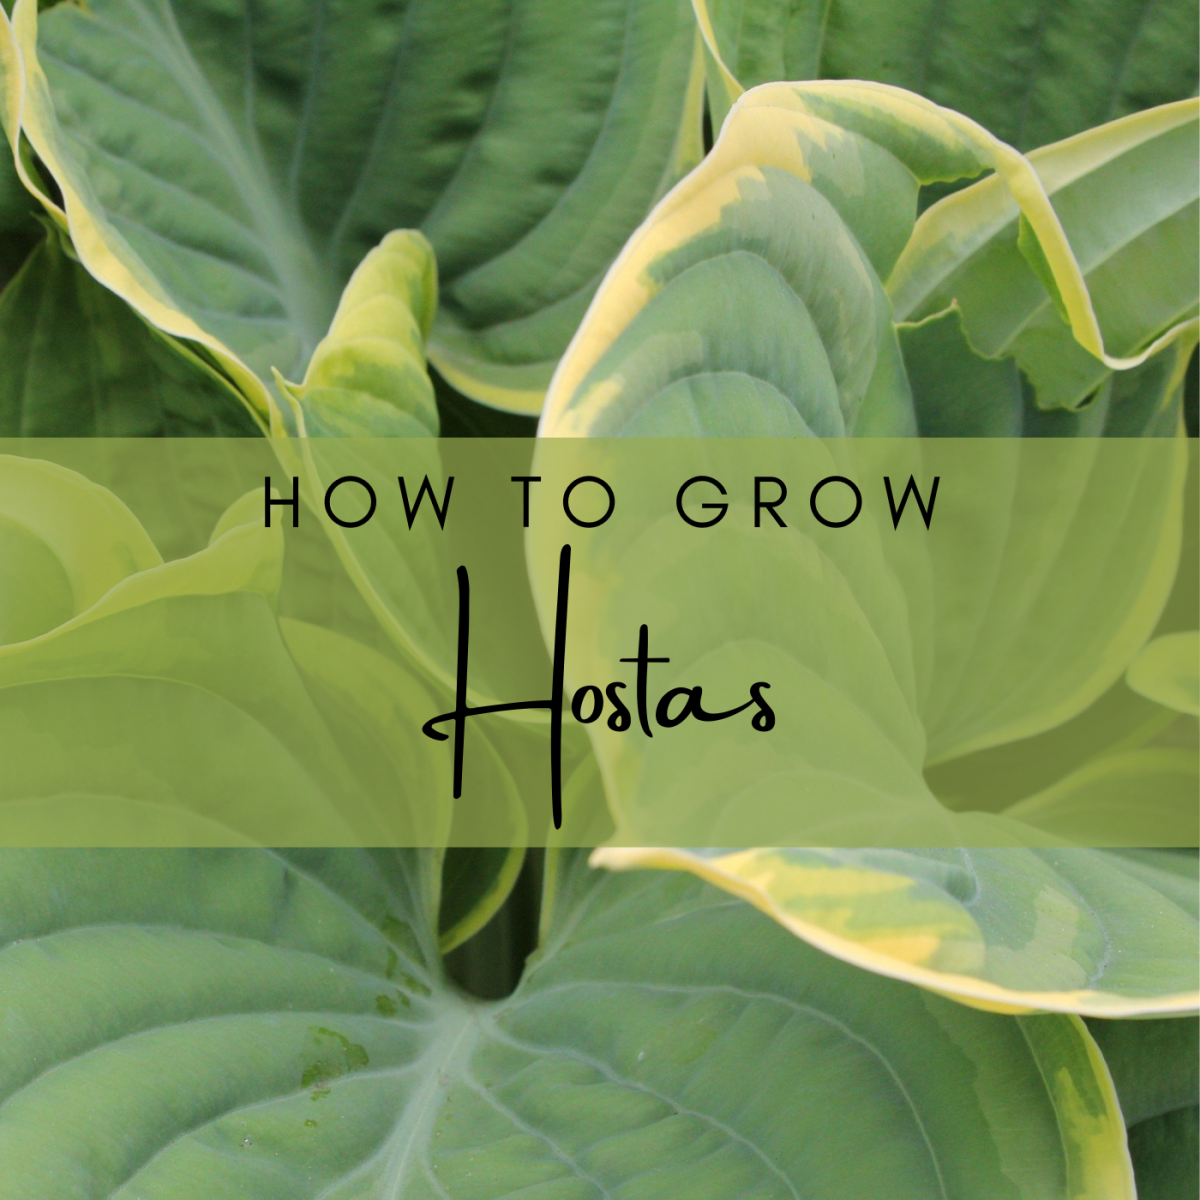 Learn how to plant and grow hostas, along with tips for pest and disease prevention.